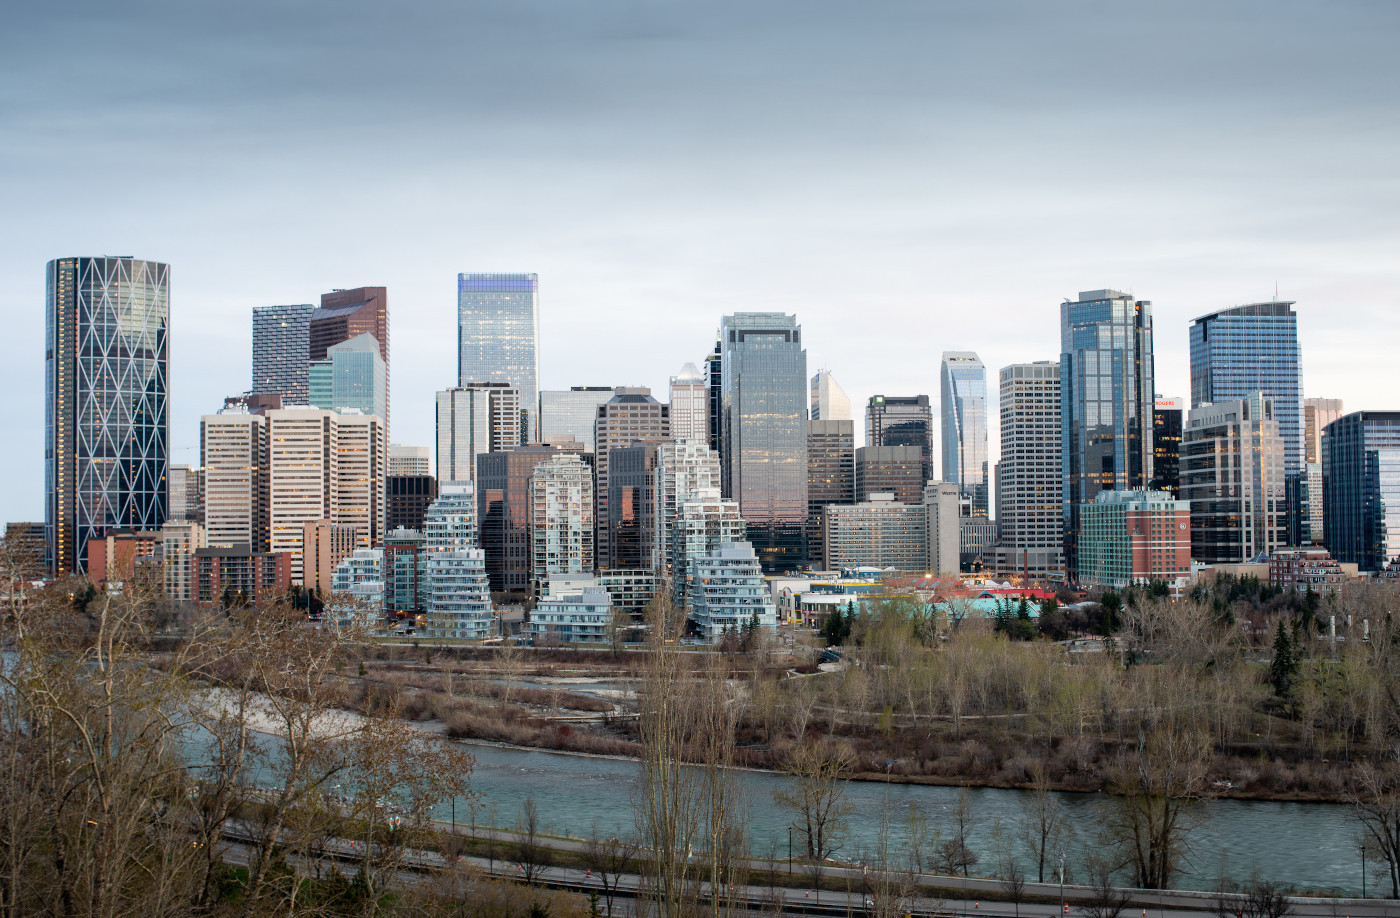 Calgary in Canada is aiming to become a hub city for winter sports during the coronavirus pandemic ©Wikipedia